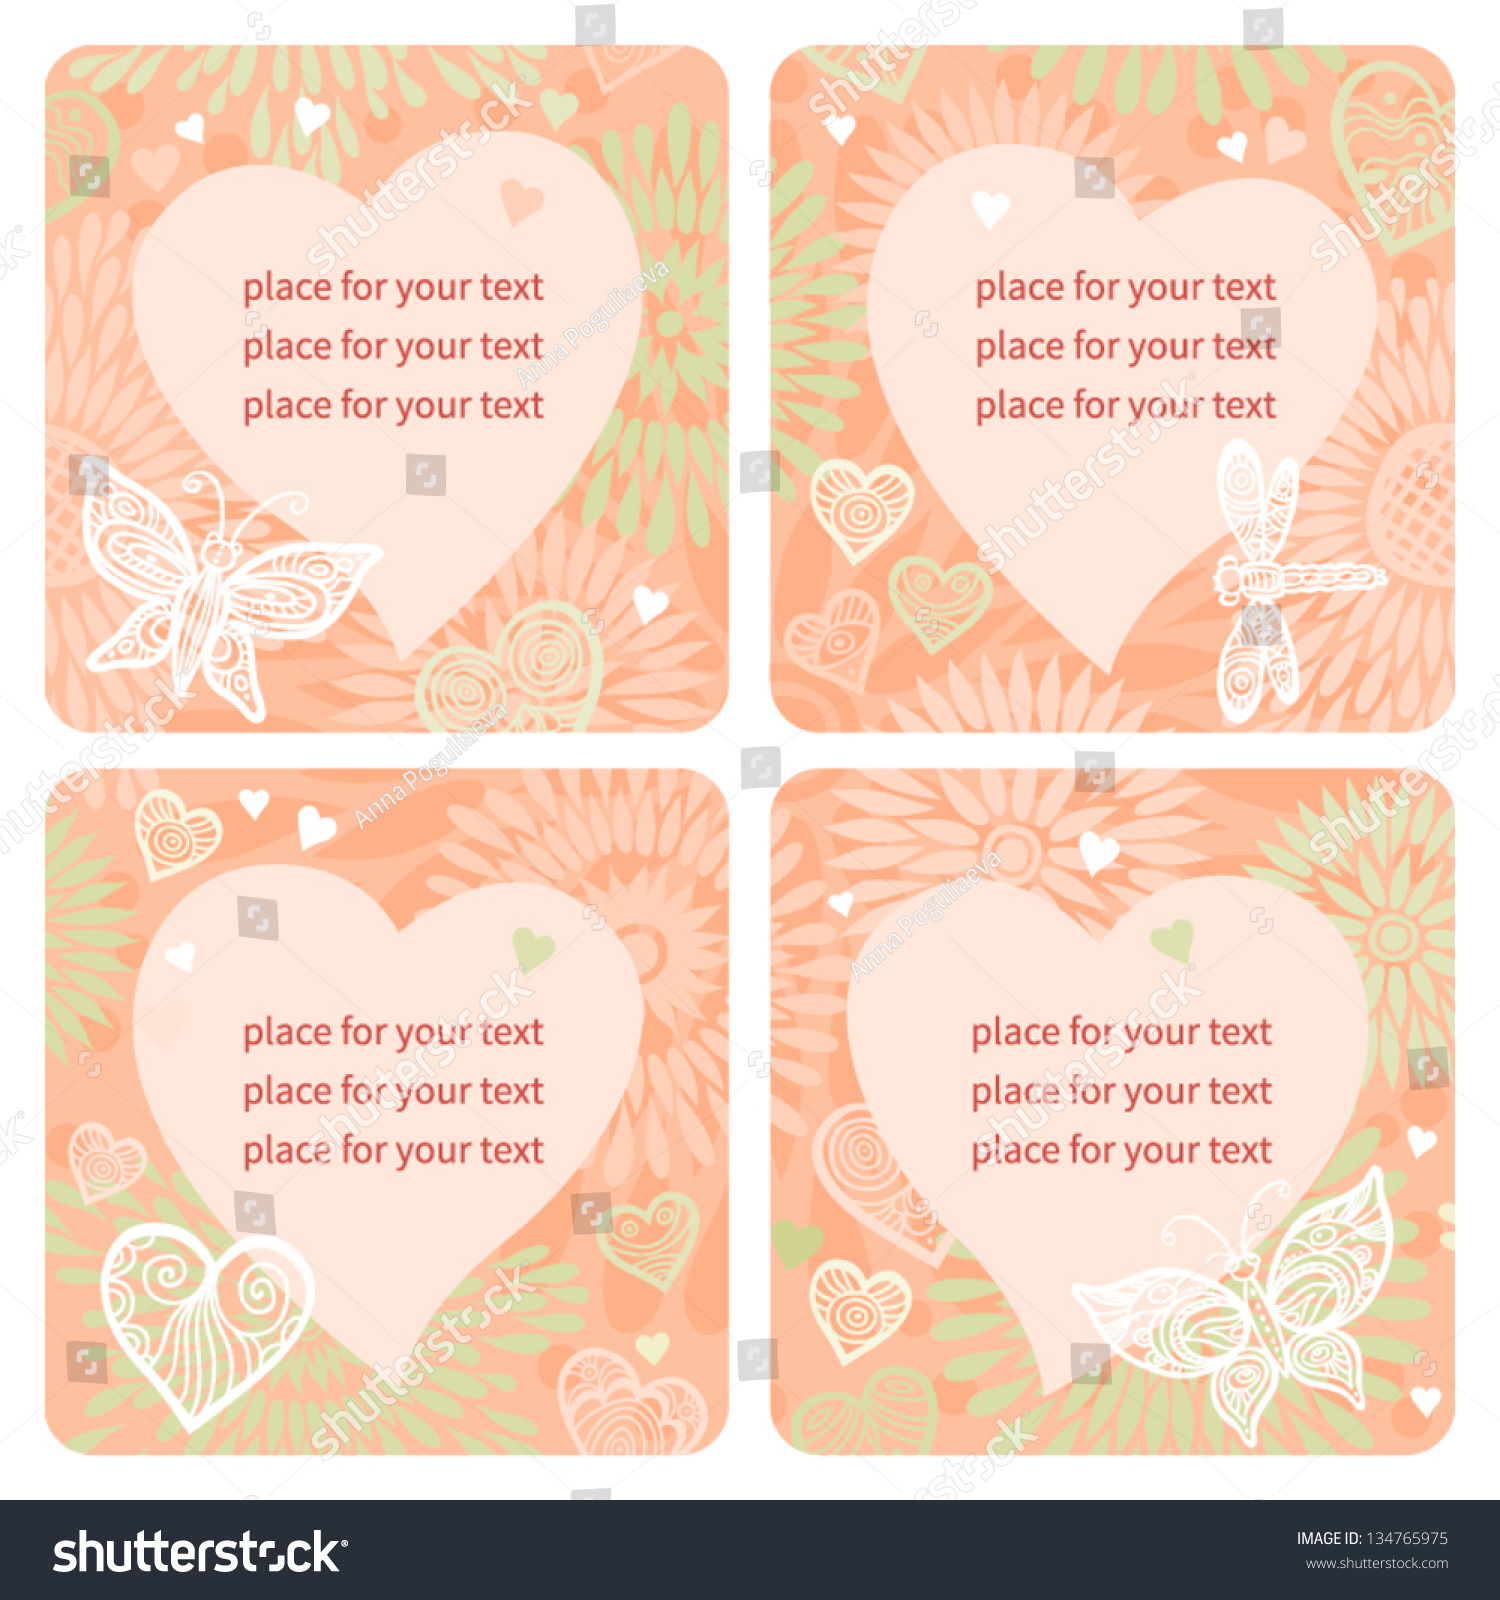 ... , butterflies and a place for text. Template frame design for card